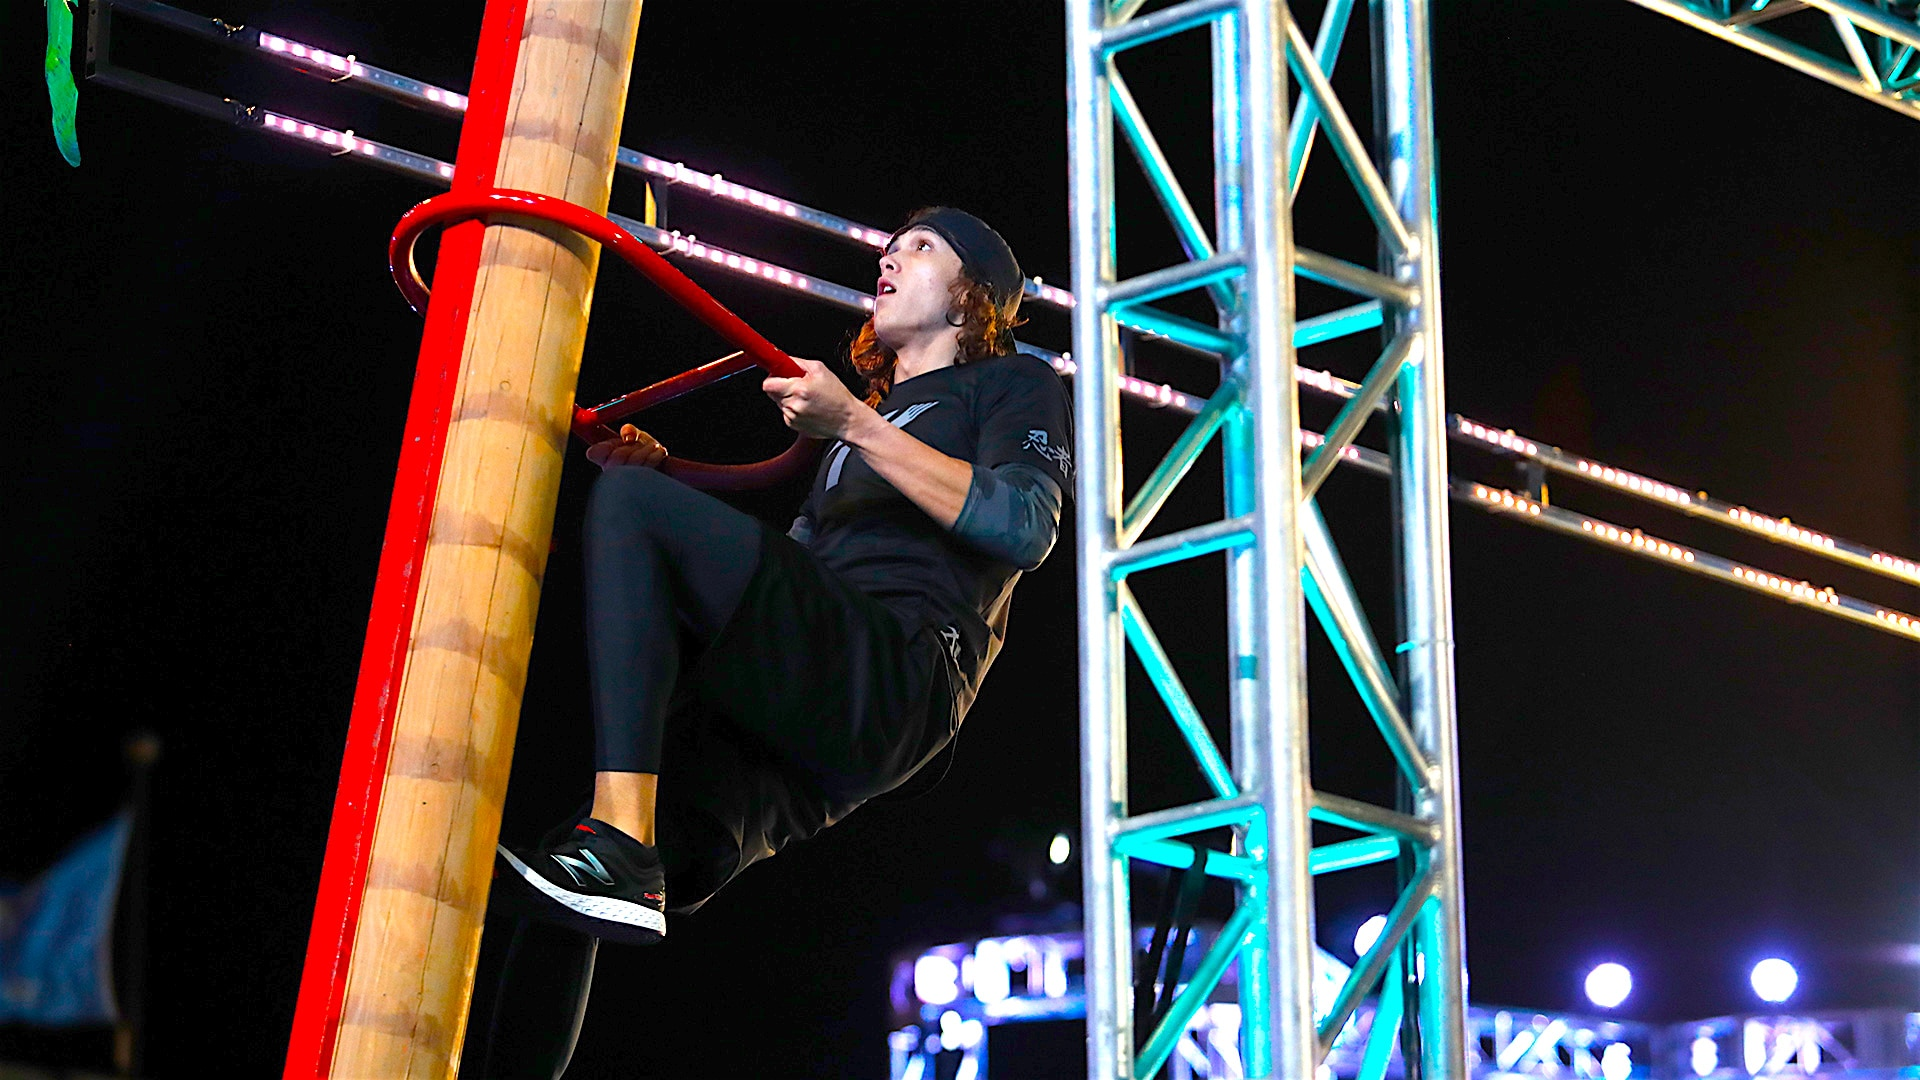 Watch American Ninja Warrior Current Preview: Next: A